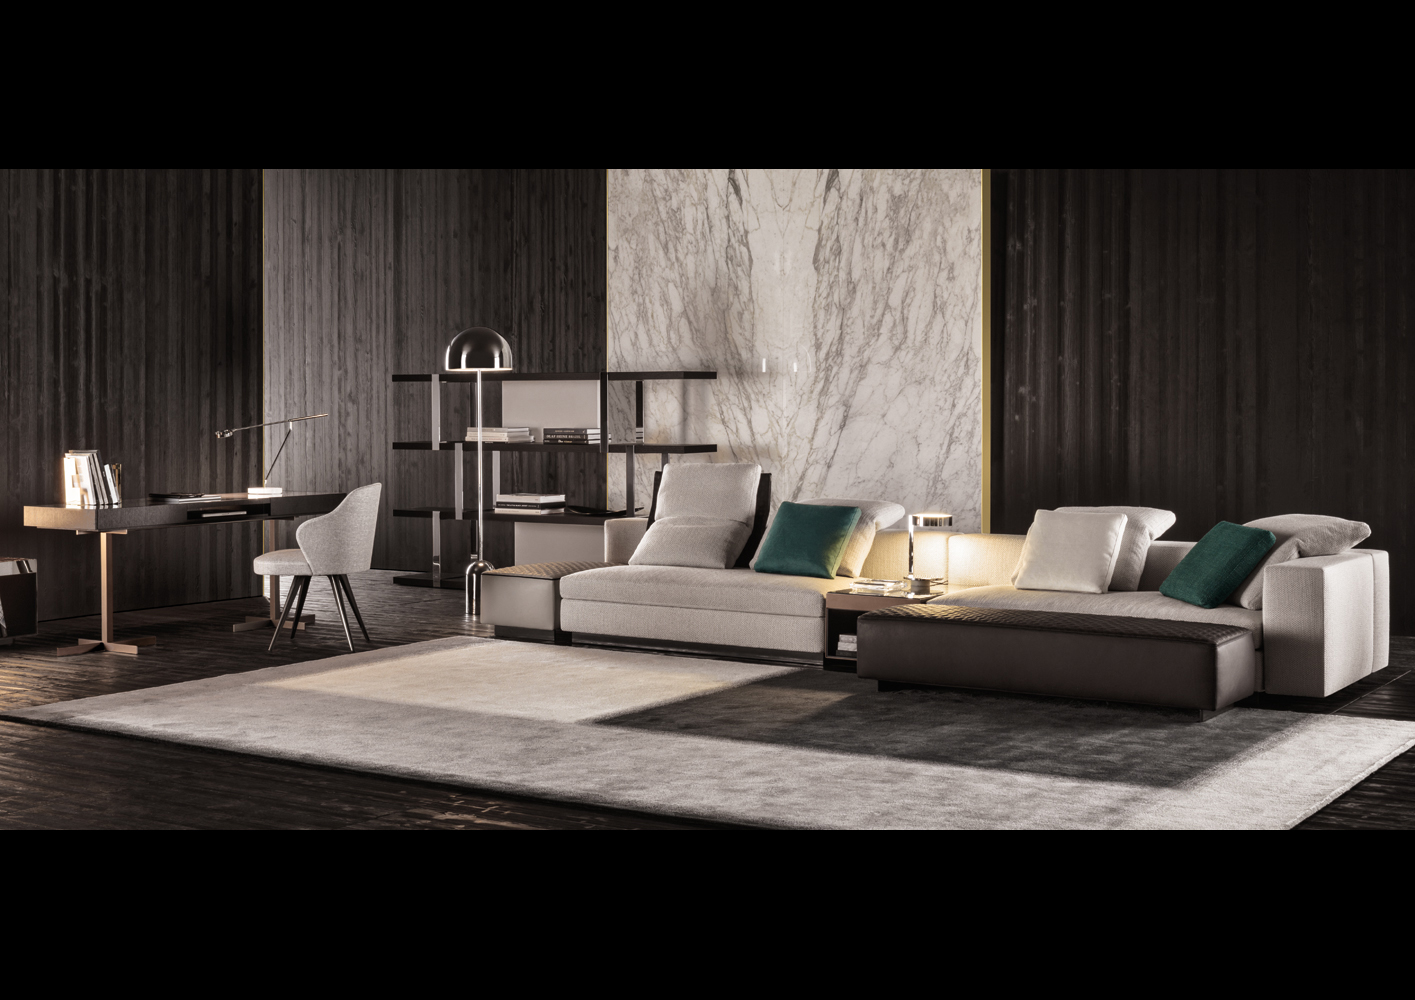 Design Bank Minotti.Yang Sofa Designed By Rodolfo Dordoni For Minotti Orange Skin